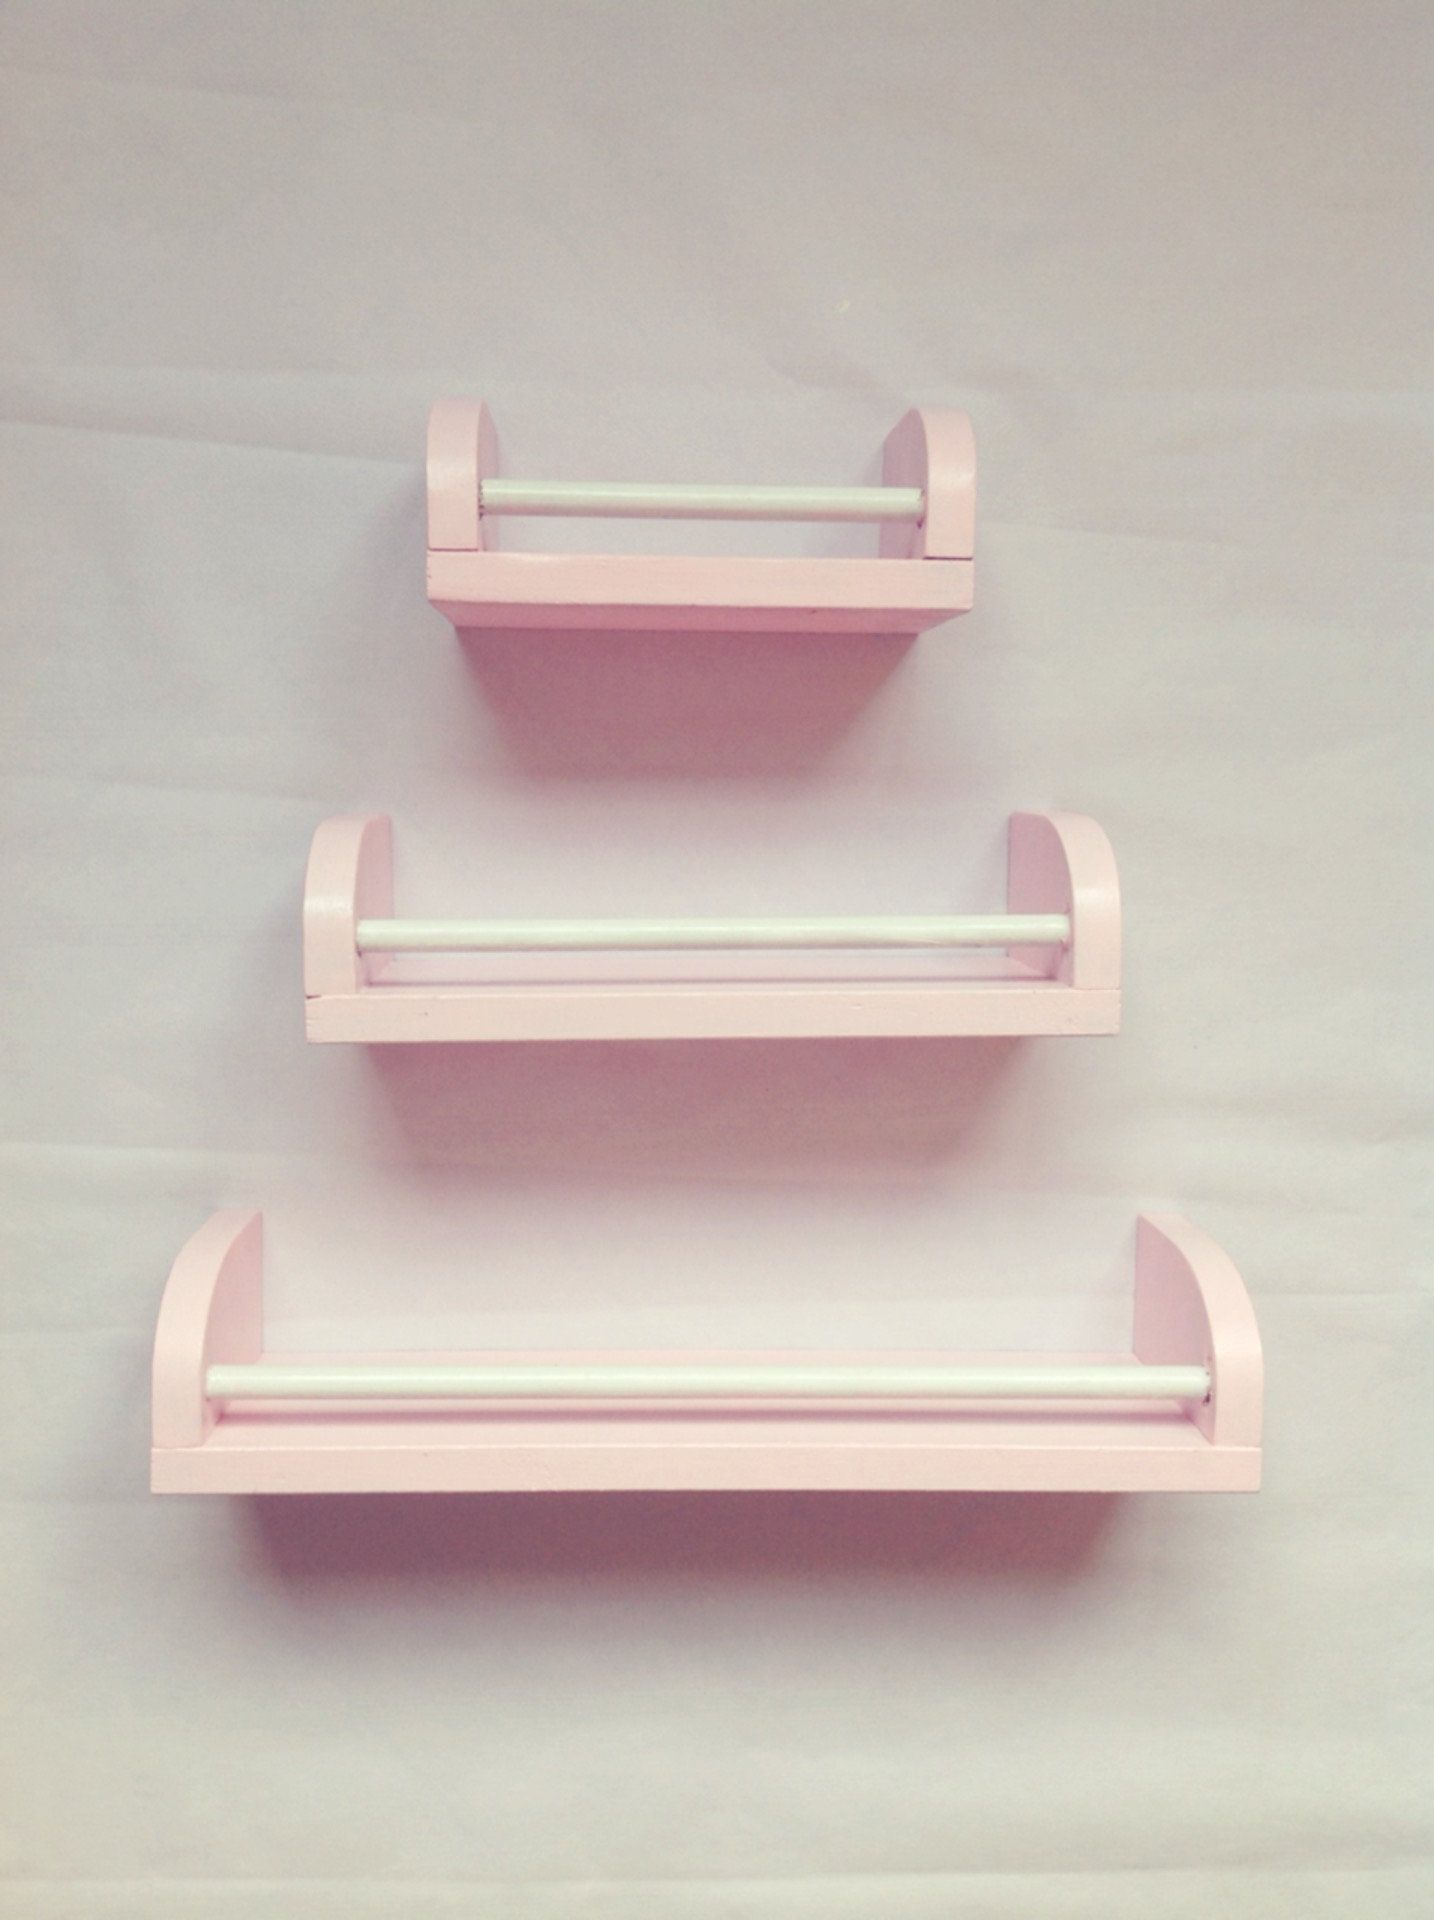 Set Of 3 Pink And White Floating Shelves Decorative Wall